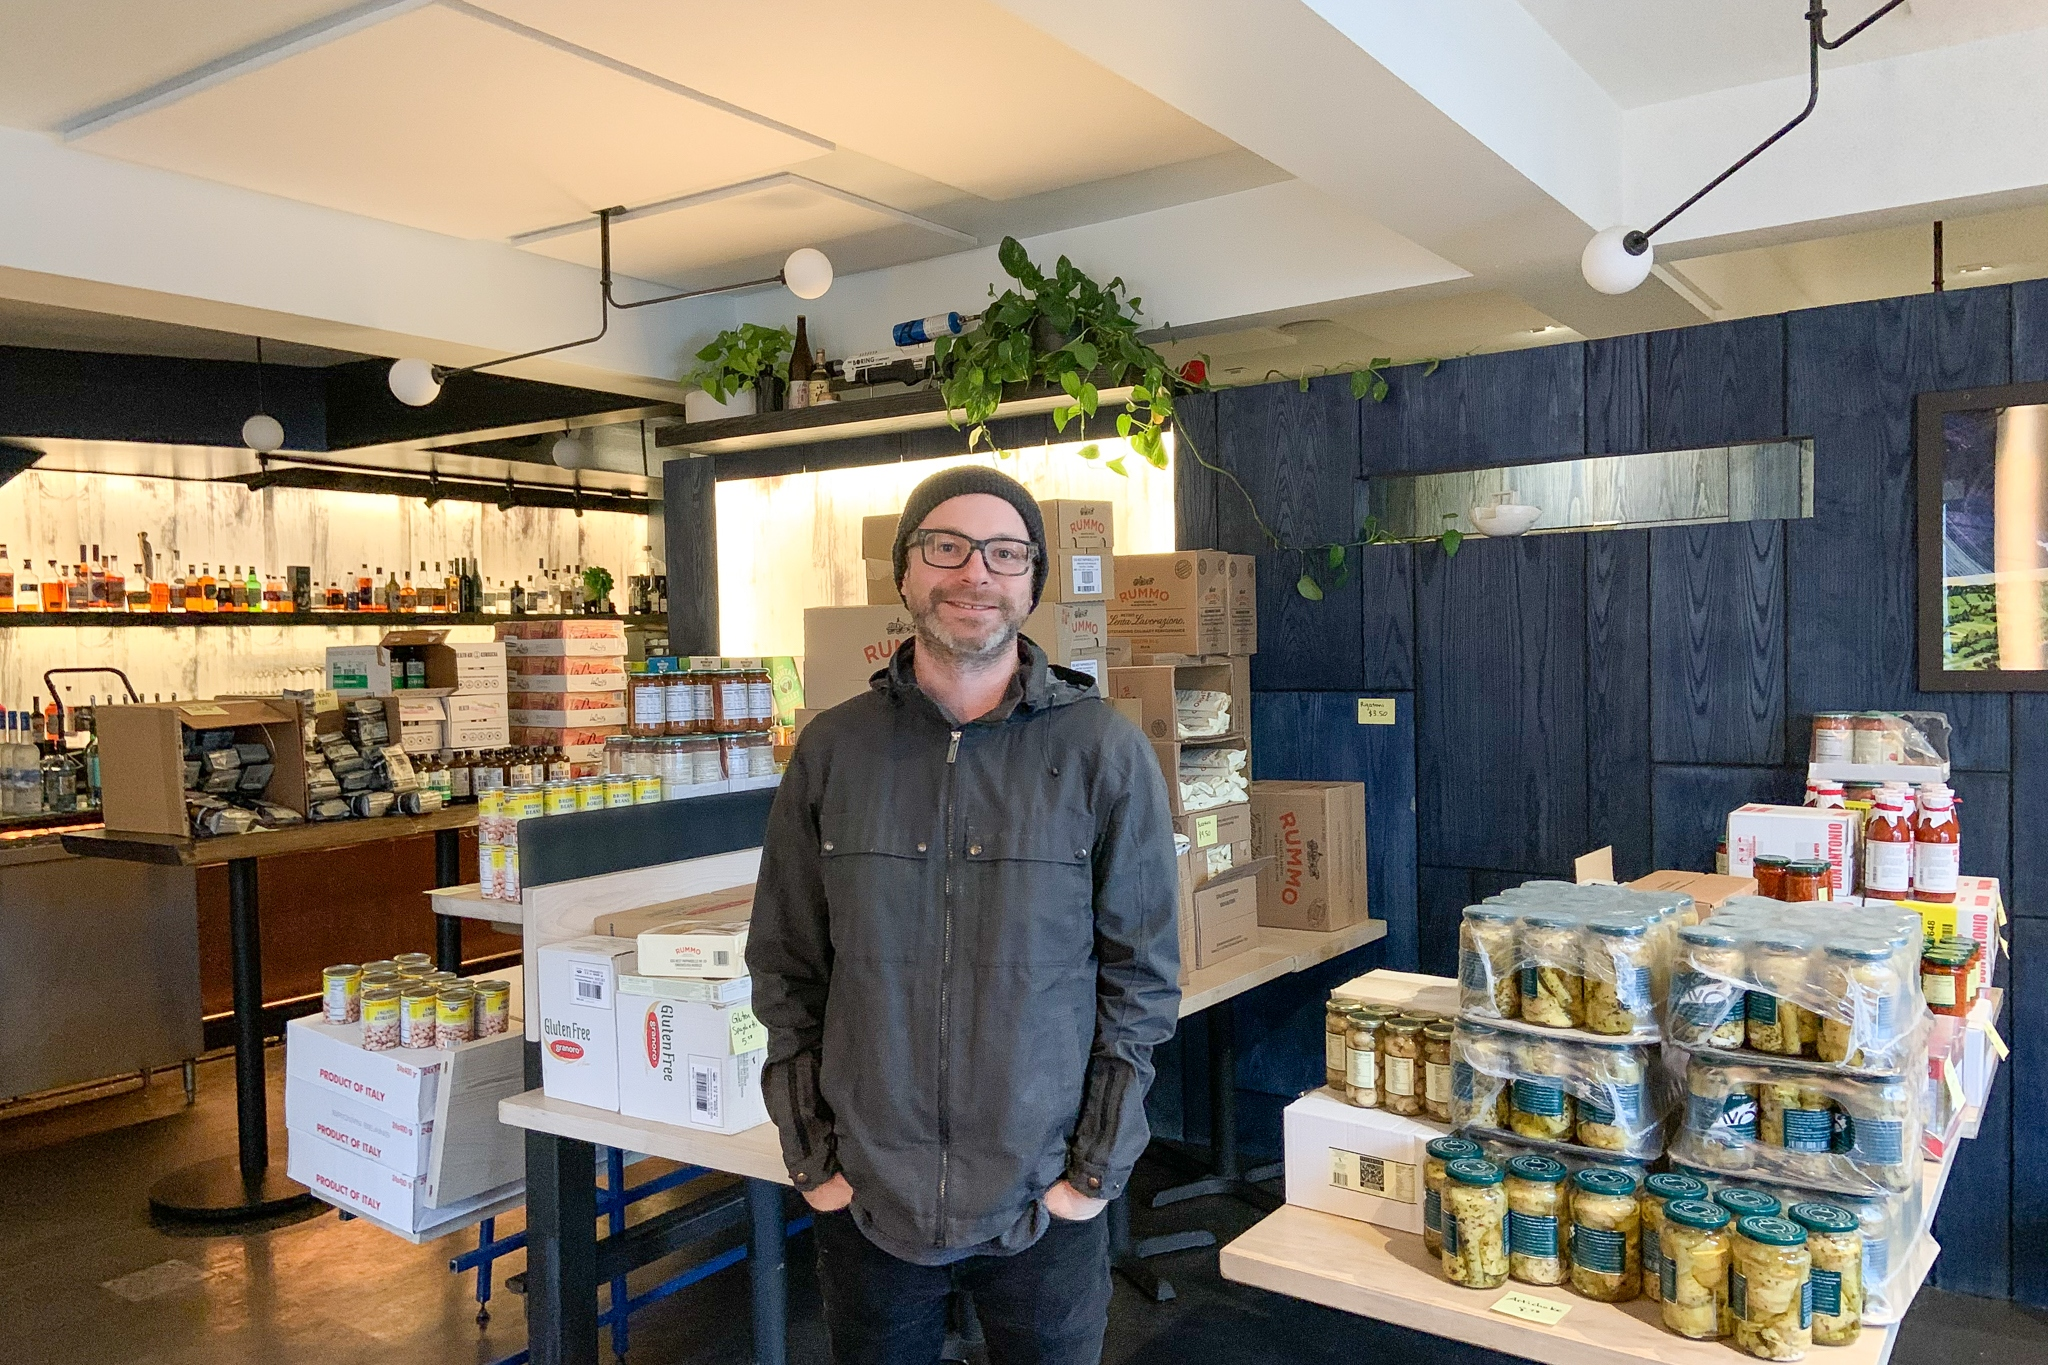 How a San Francisco restaurant reinvented itself to survive in the age of COVID-19